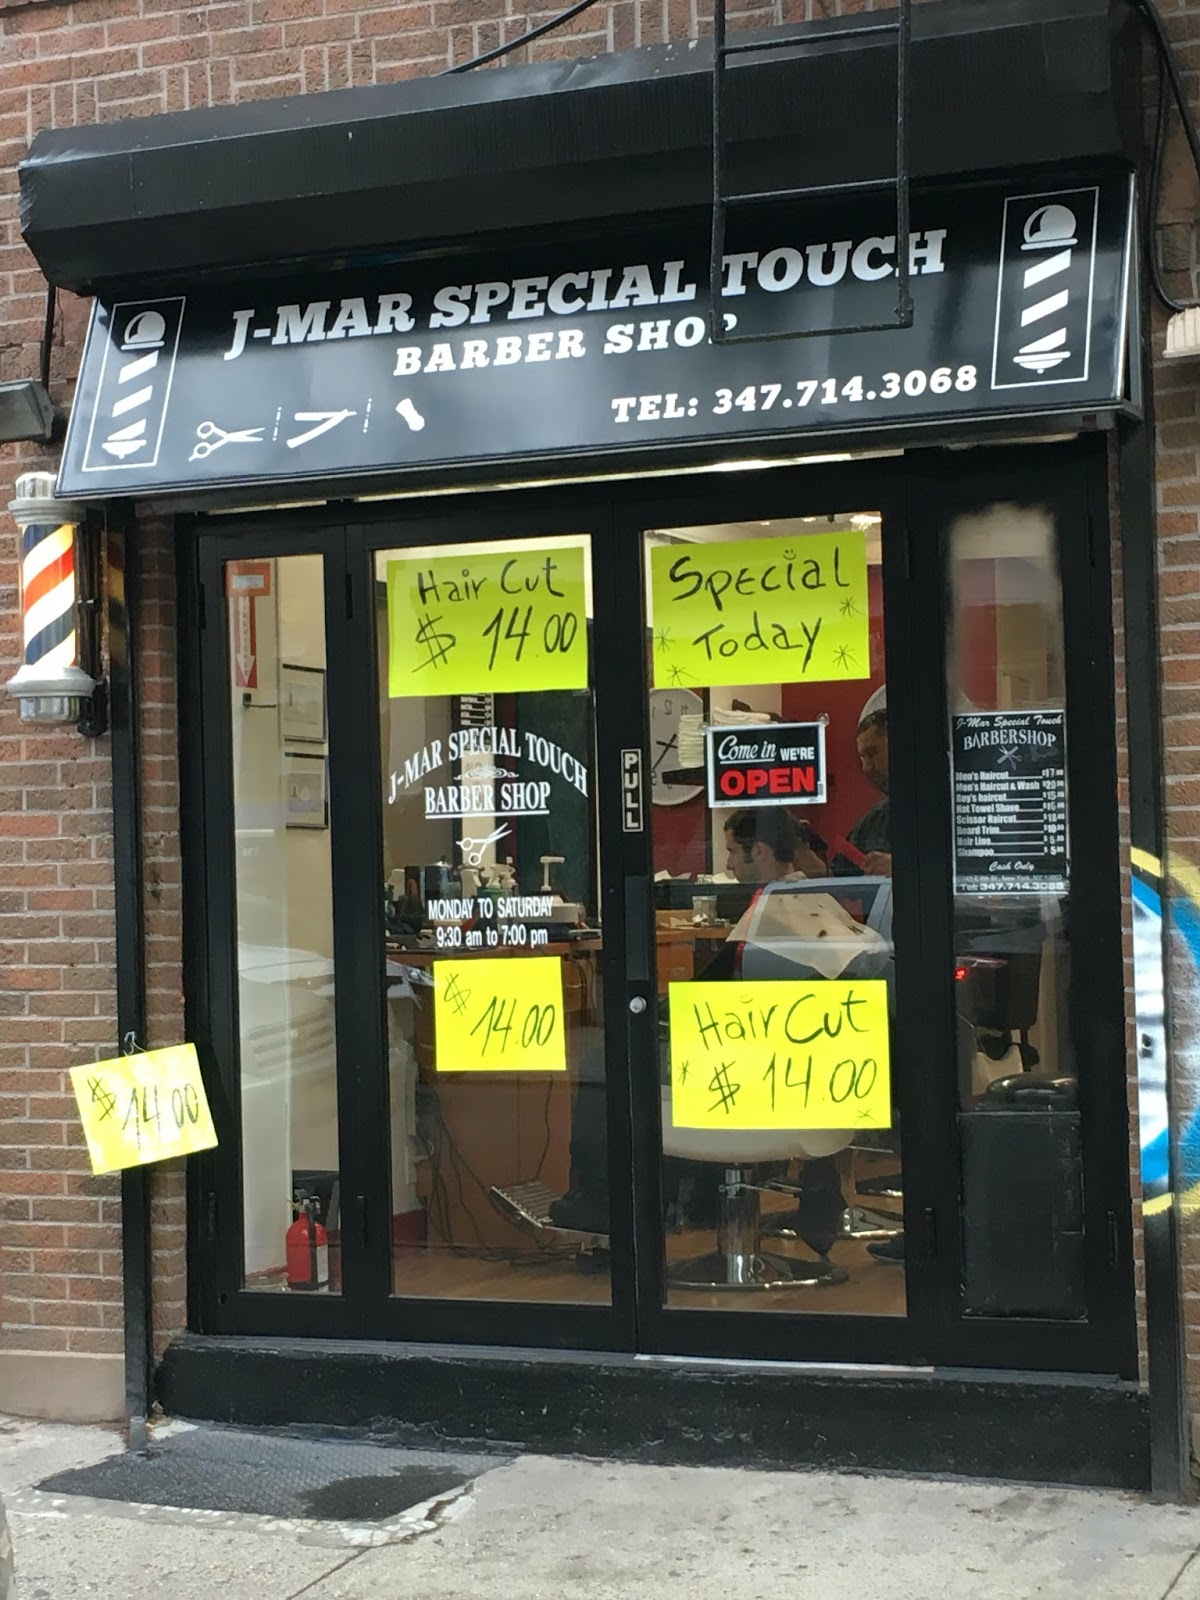 ... months, J-Mar Special Touch barber shop closes on East 6th Street